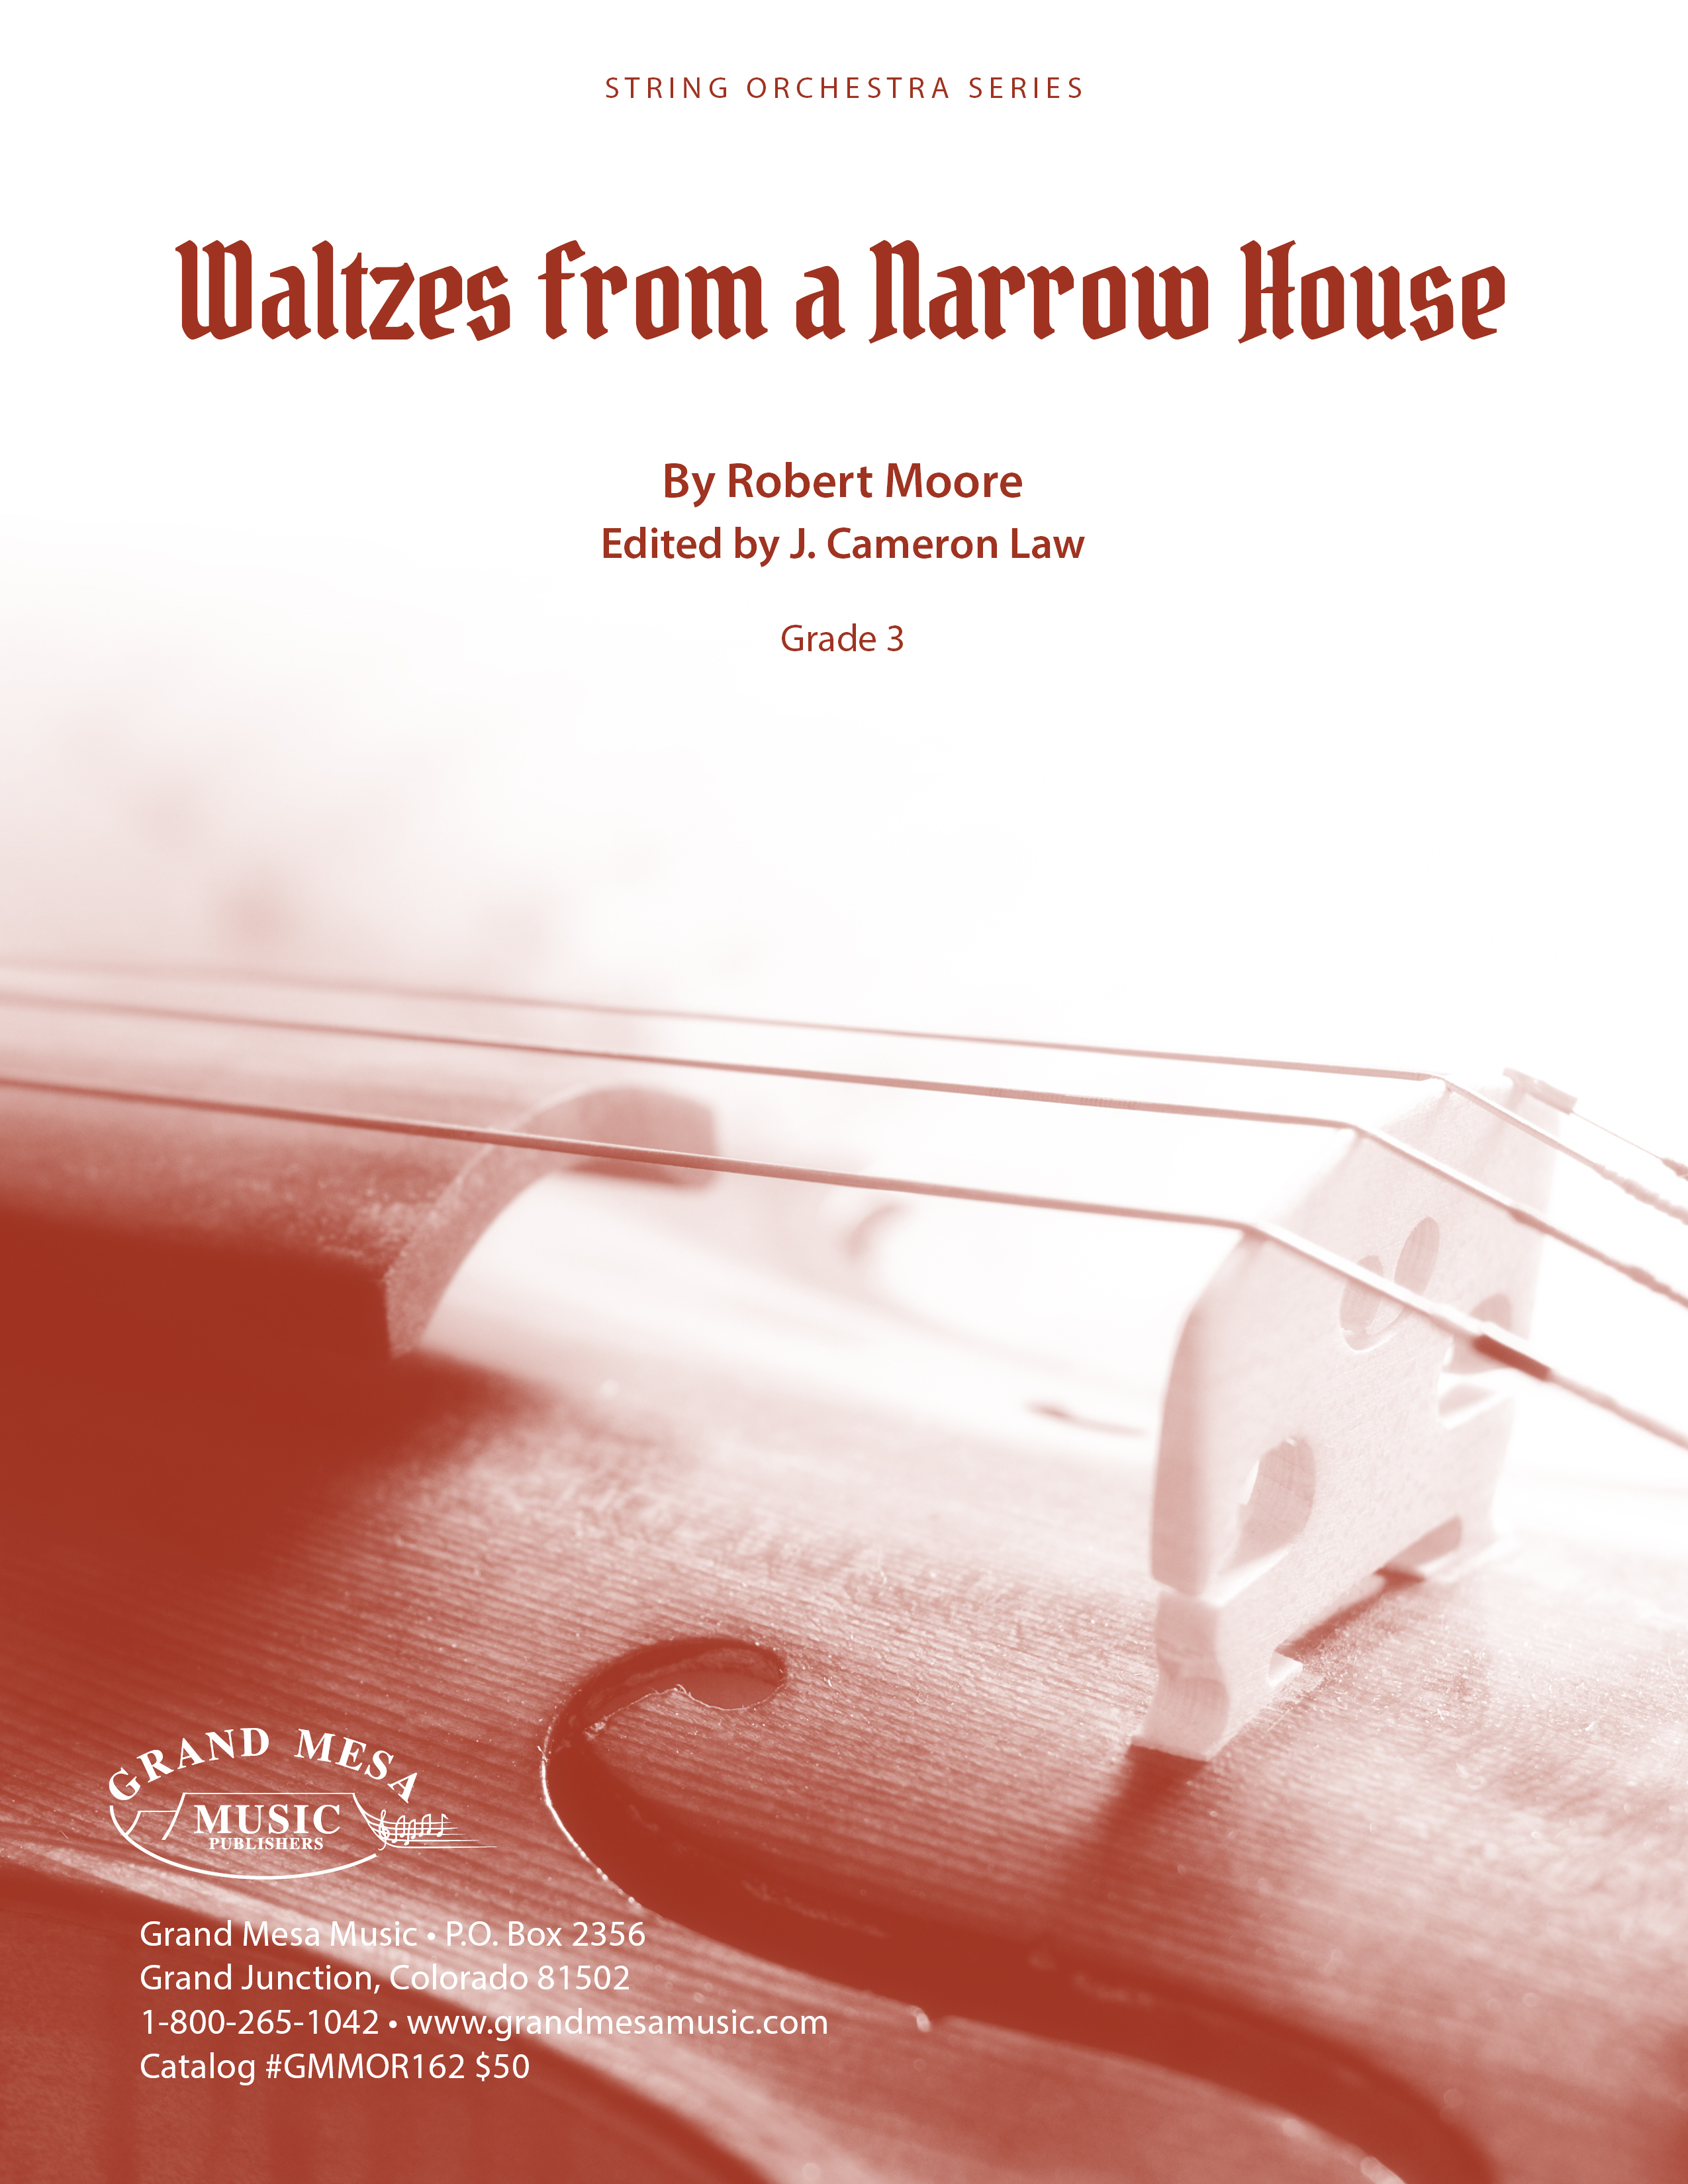 Waltzes from a Narrow House